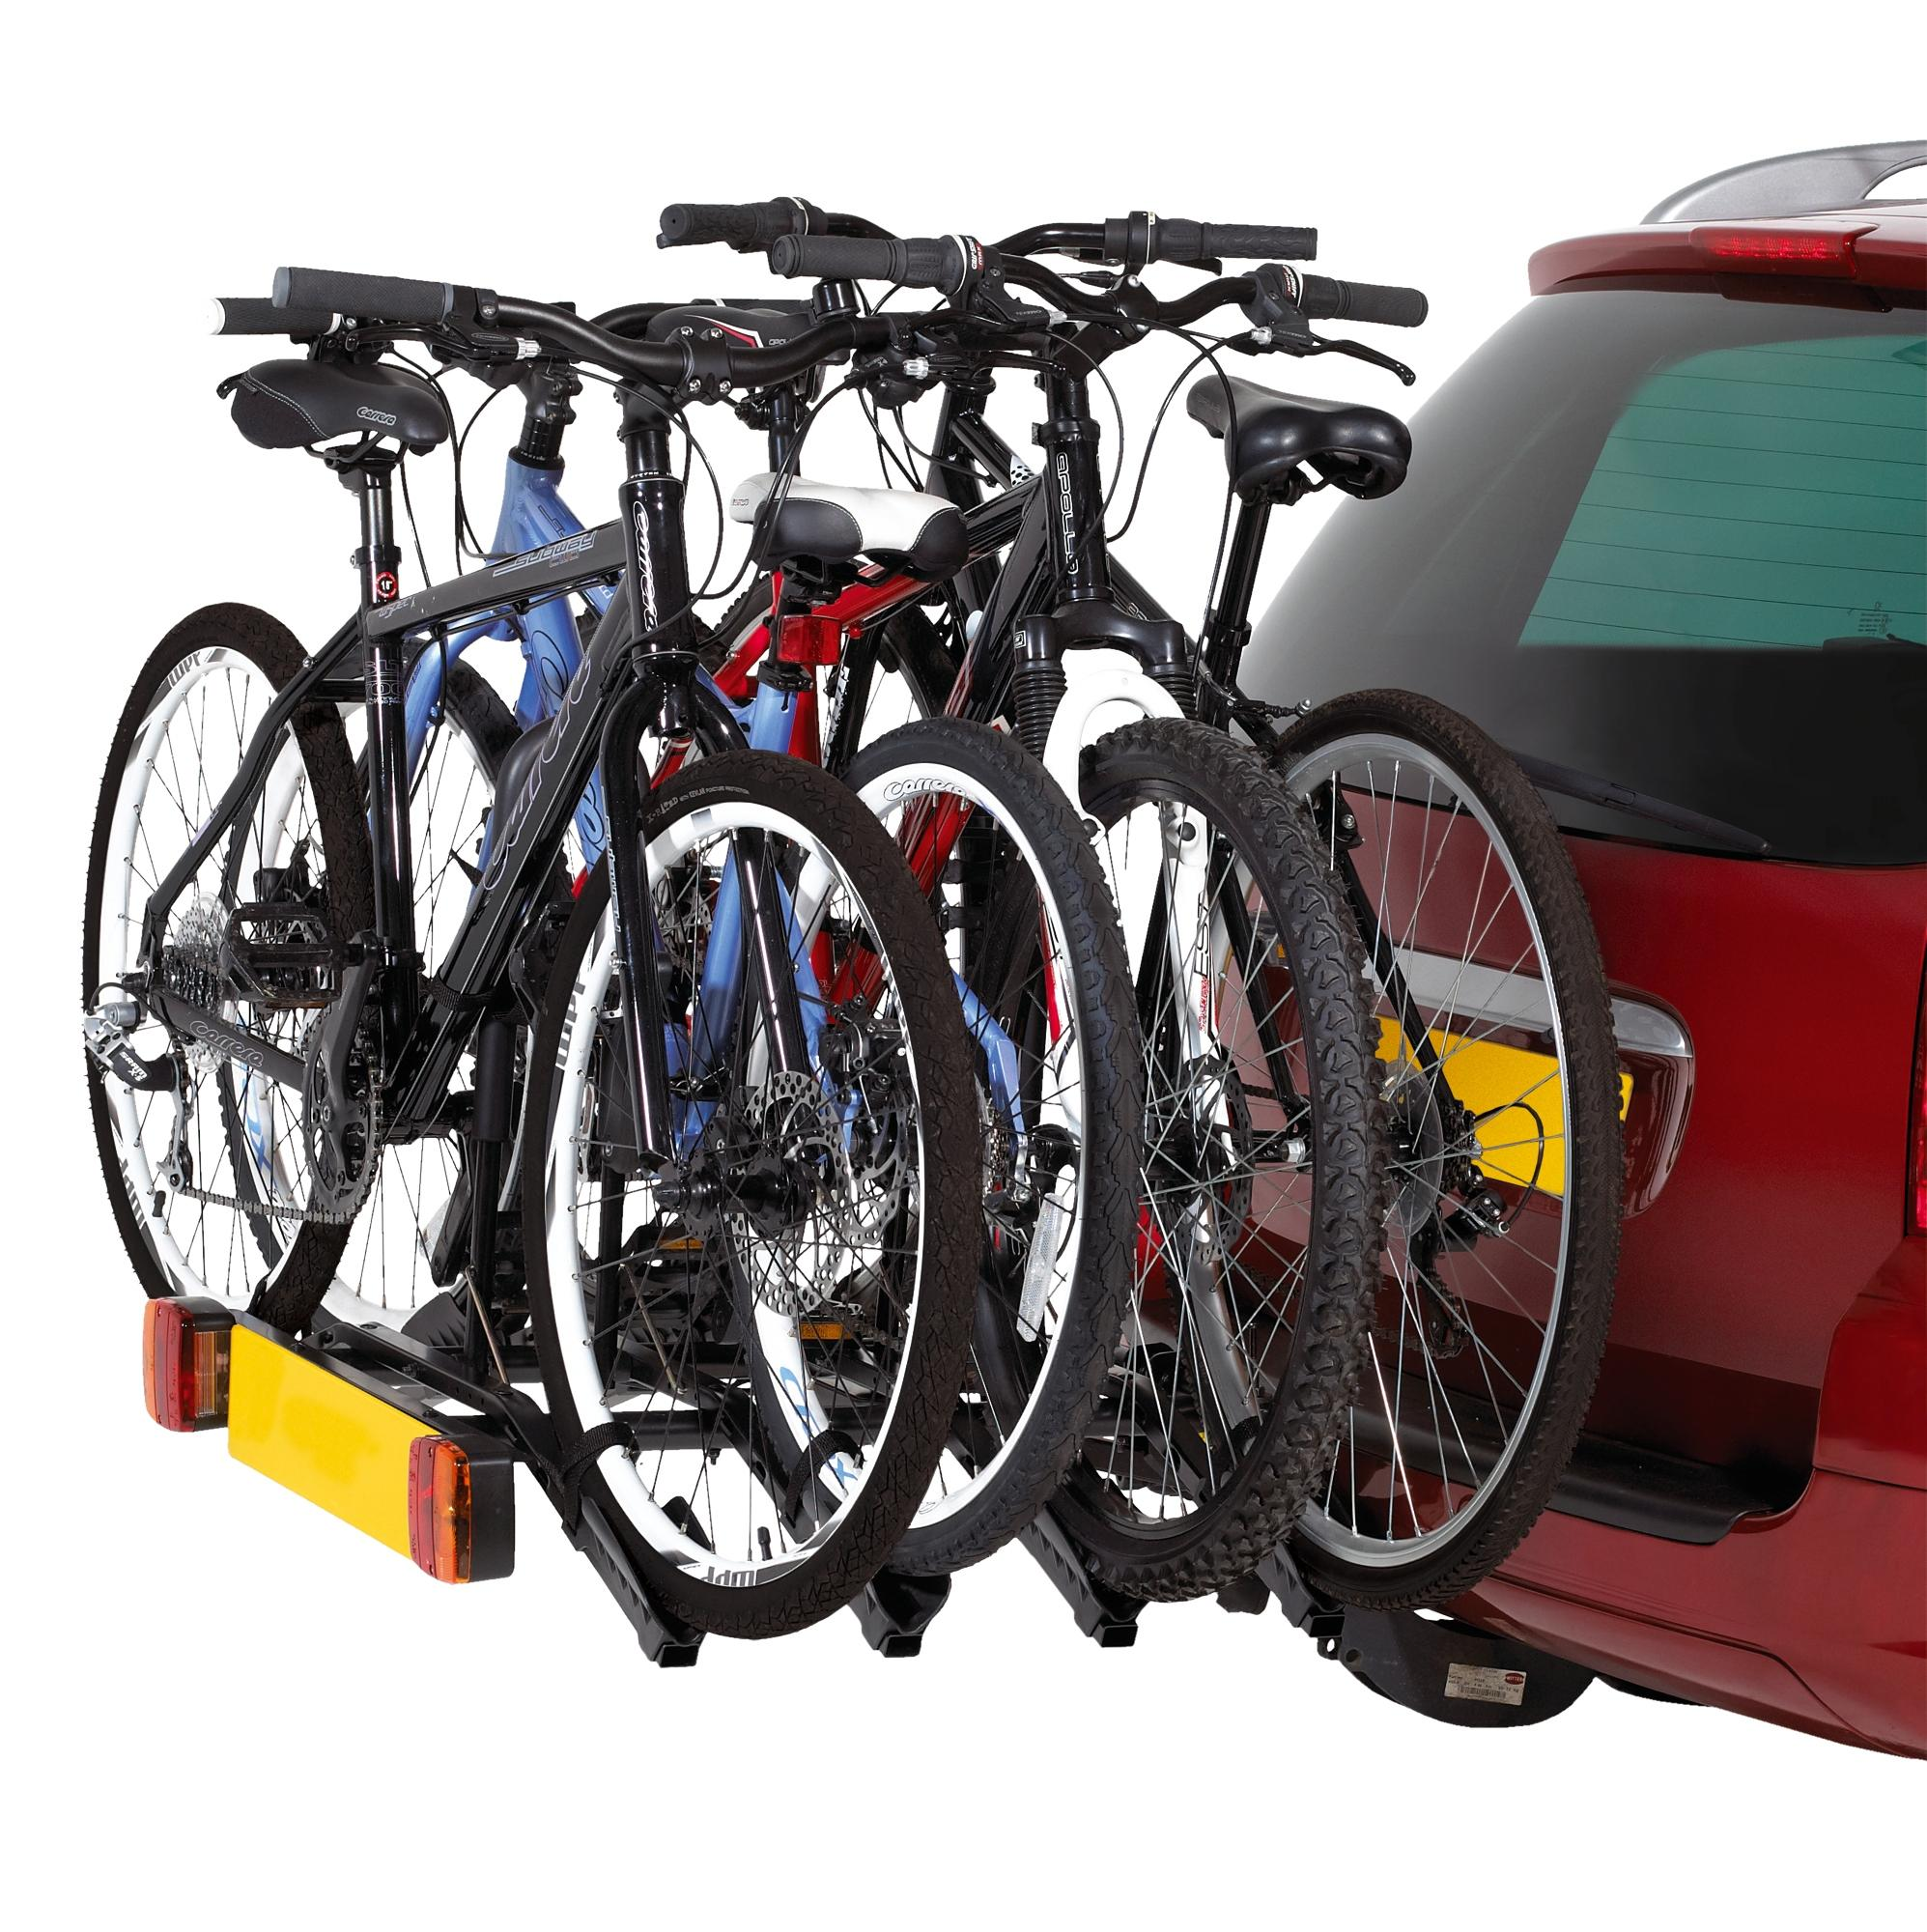 Motorcycle Instant Garage : Bike roof rack best ideas about bicycle storage on